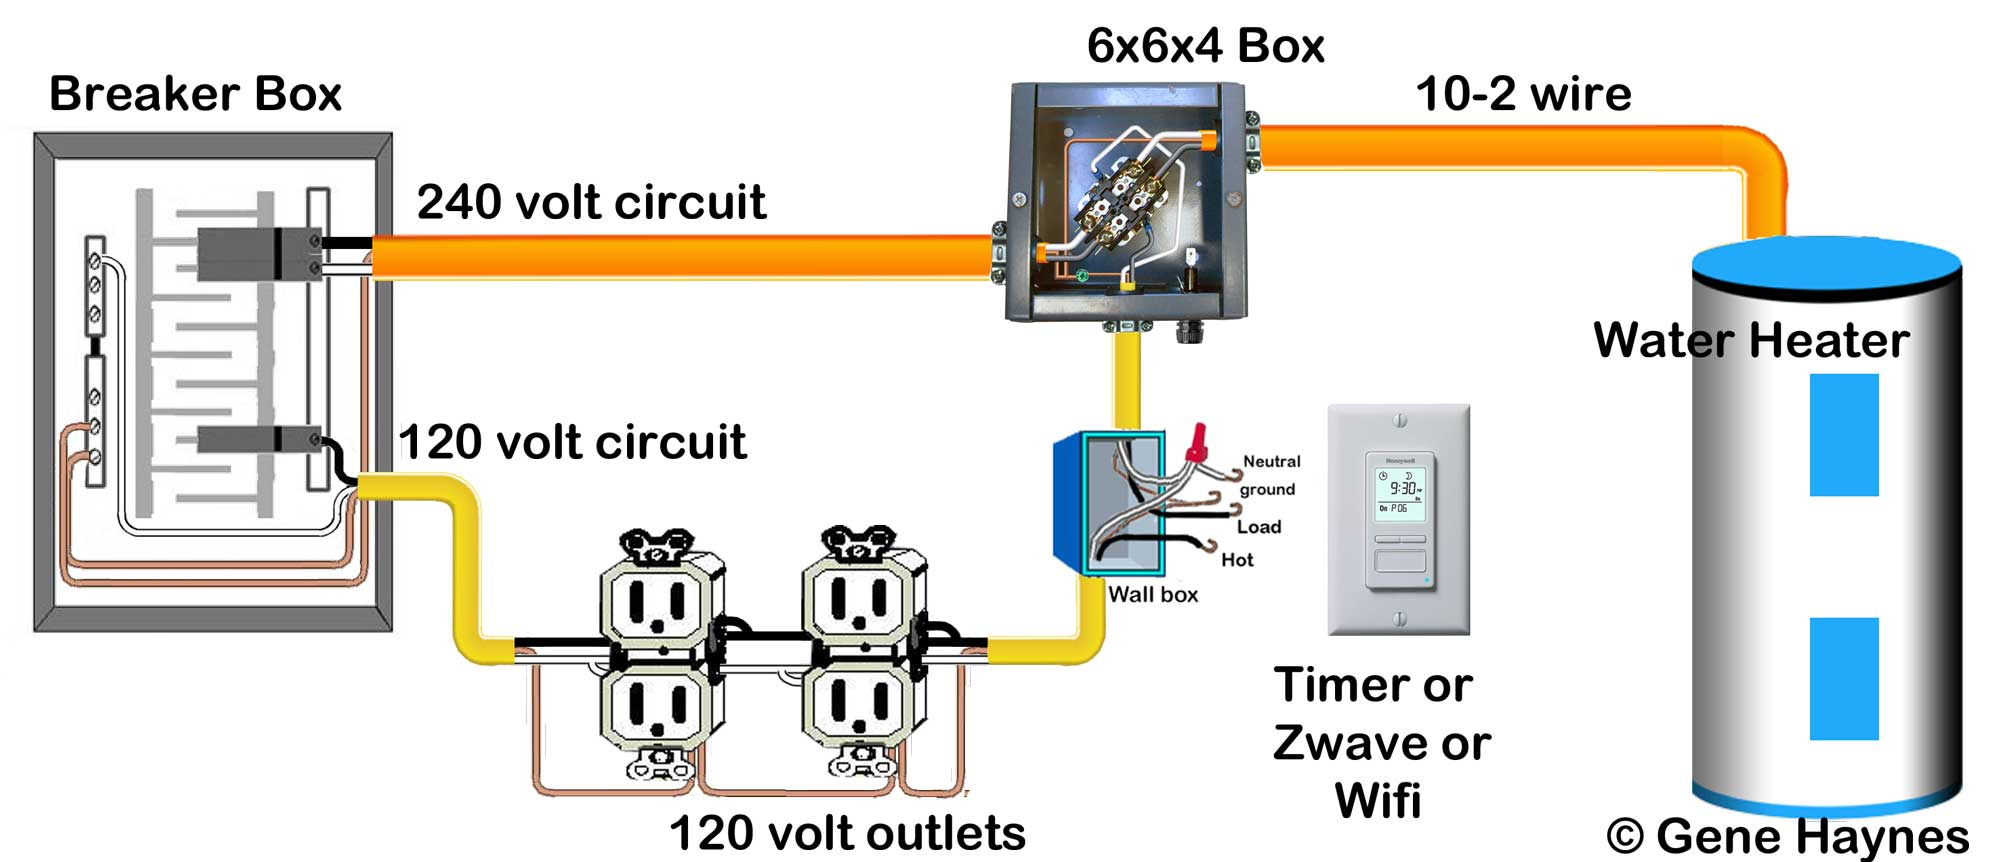 Simple Outlet Circuits Not Lossing Wiring Diagram Half Switched Schematic Basic House Diagrams Rh 26 Koch Foerderbandtrommeln De Overloaded Circuit Breaker